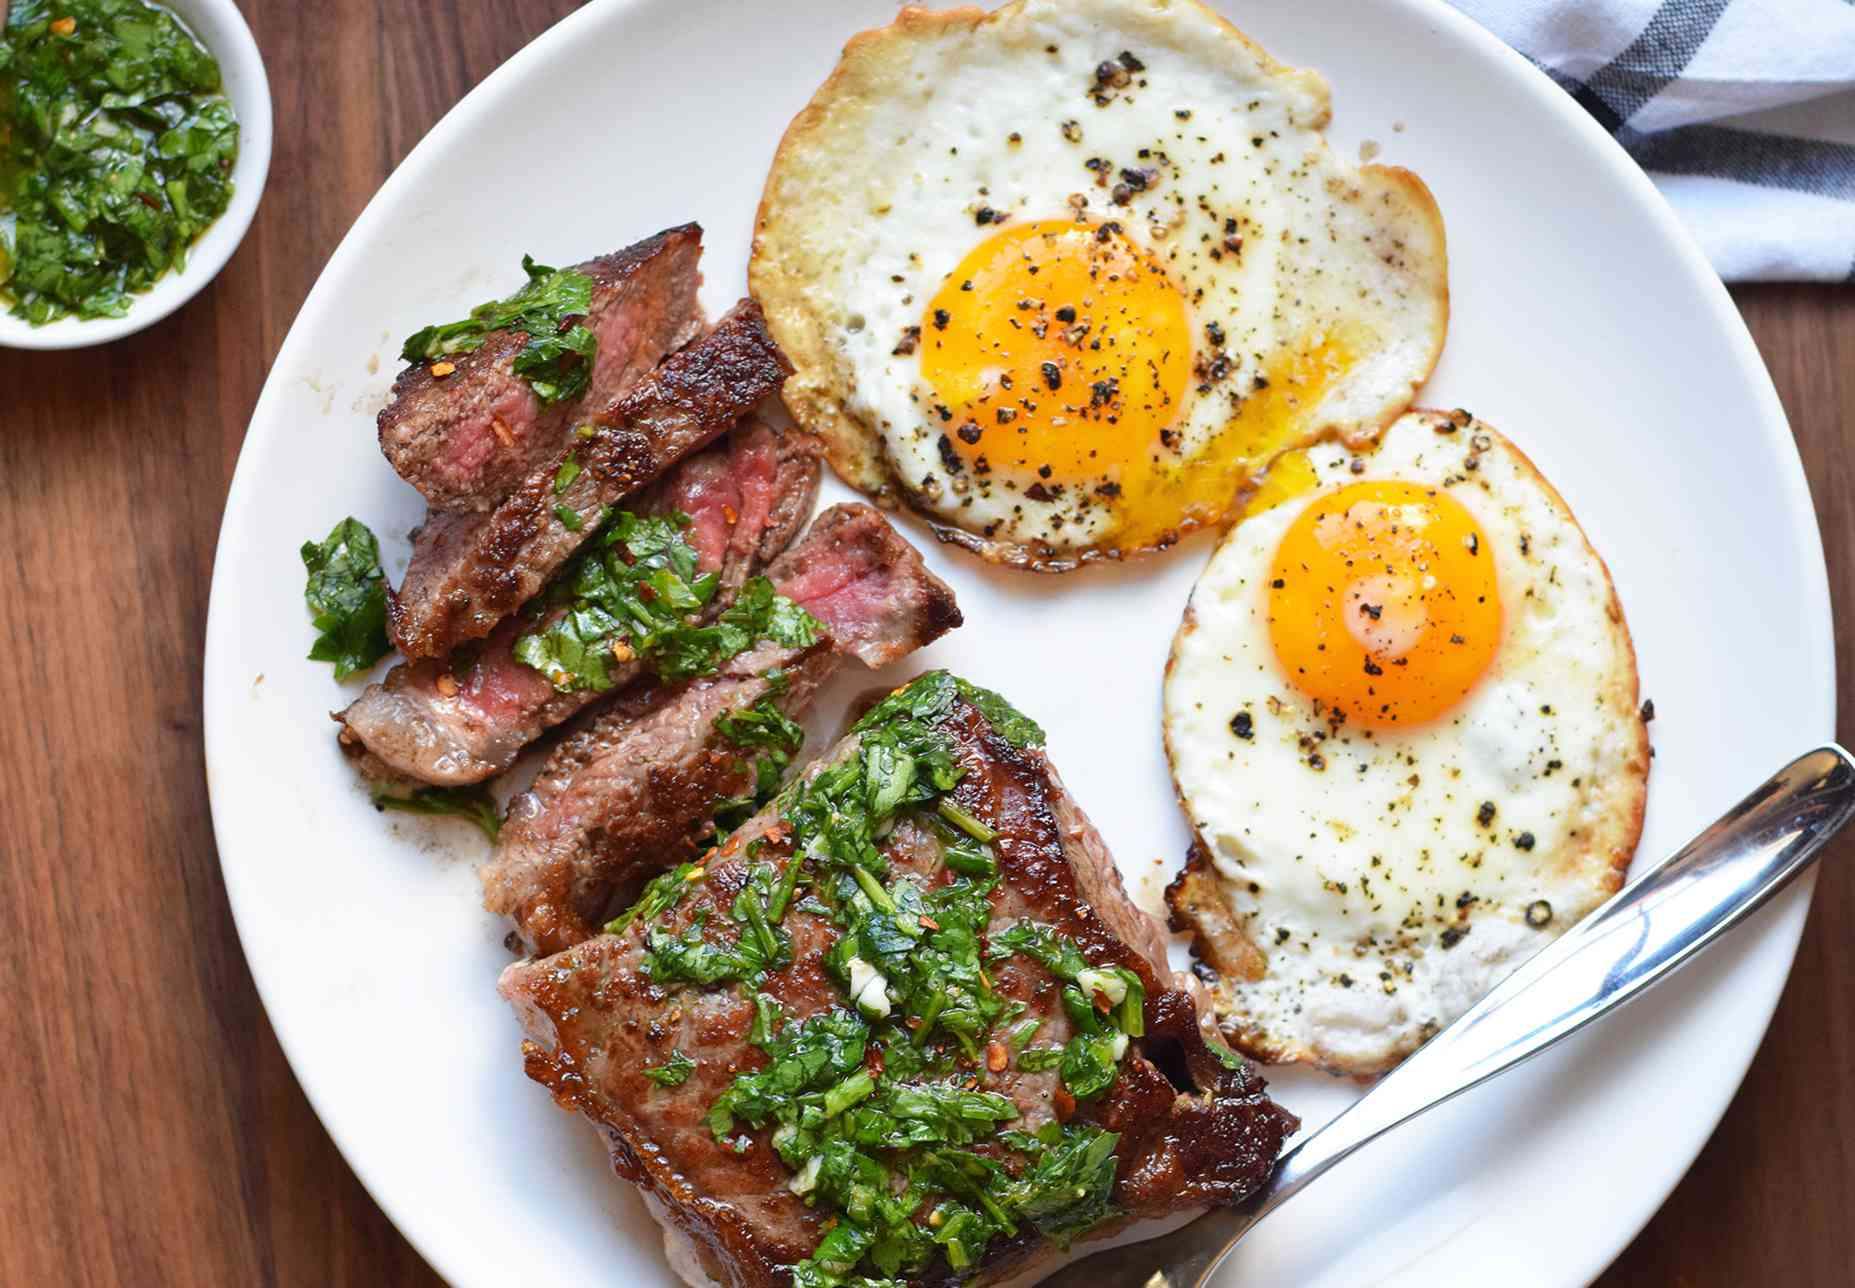 Steak and eggs on a plate